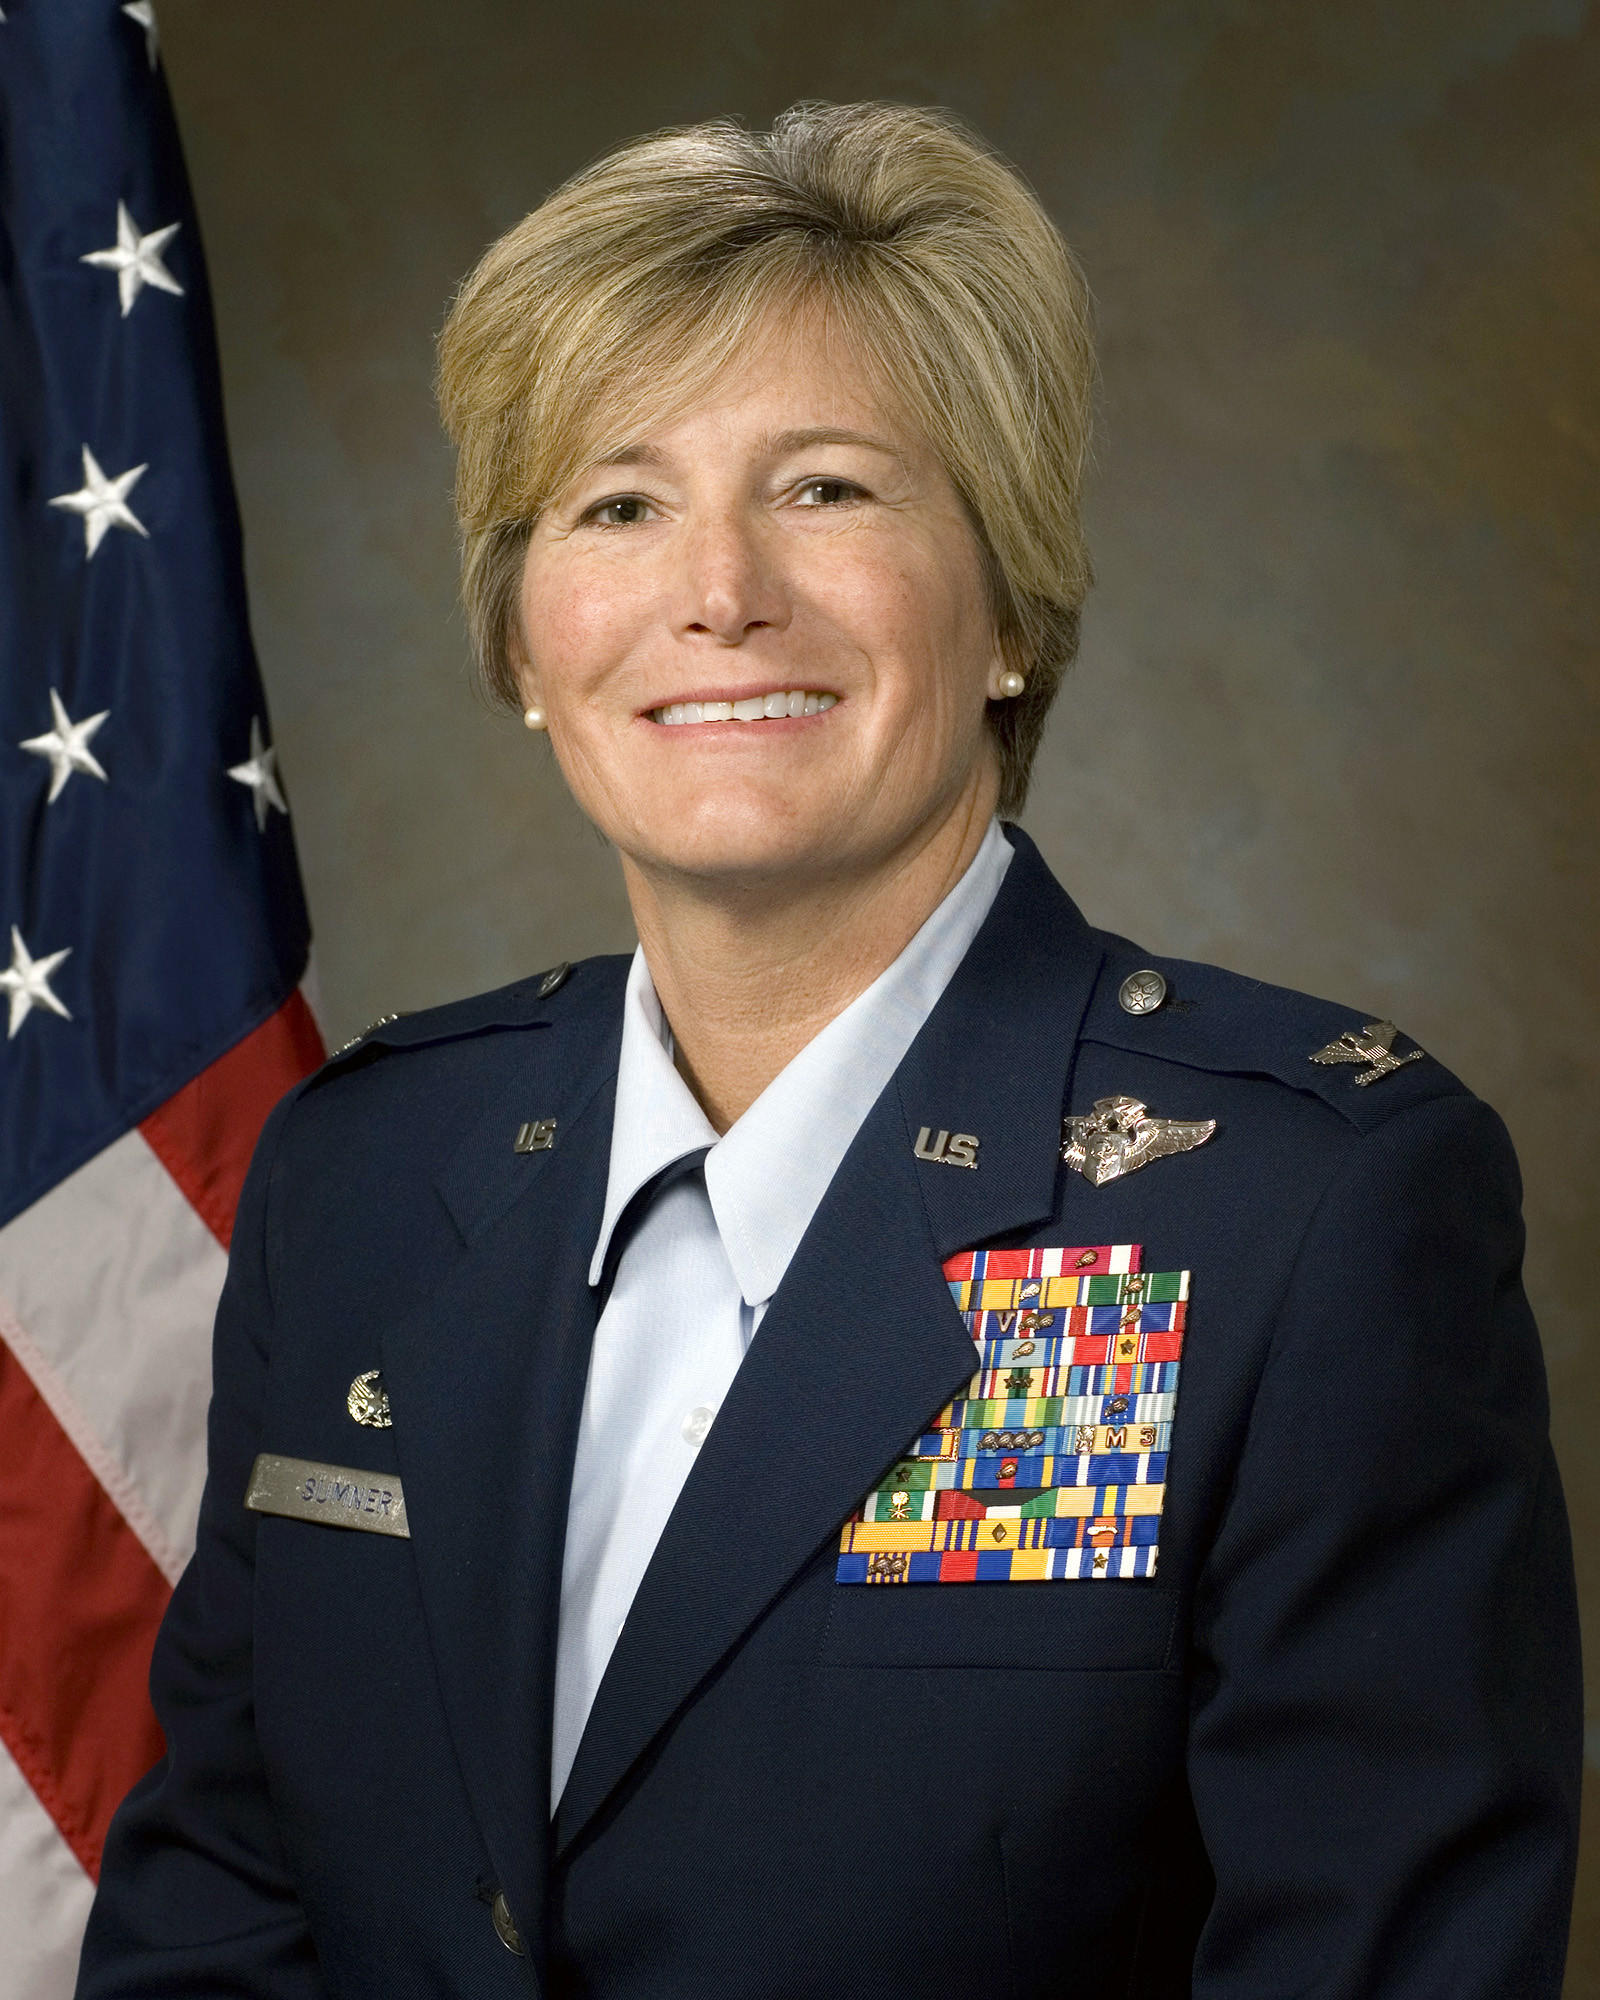 Retired Col. Nancy Sumner, a Glendale resident and Burbank High graduate, has been appointed by Gov. Jerry Brown to serve on the California Community College Board of Governors, a 17-member body responsible for setting policy for the 112 community colleges in the state.